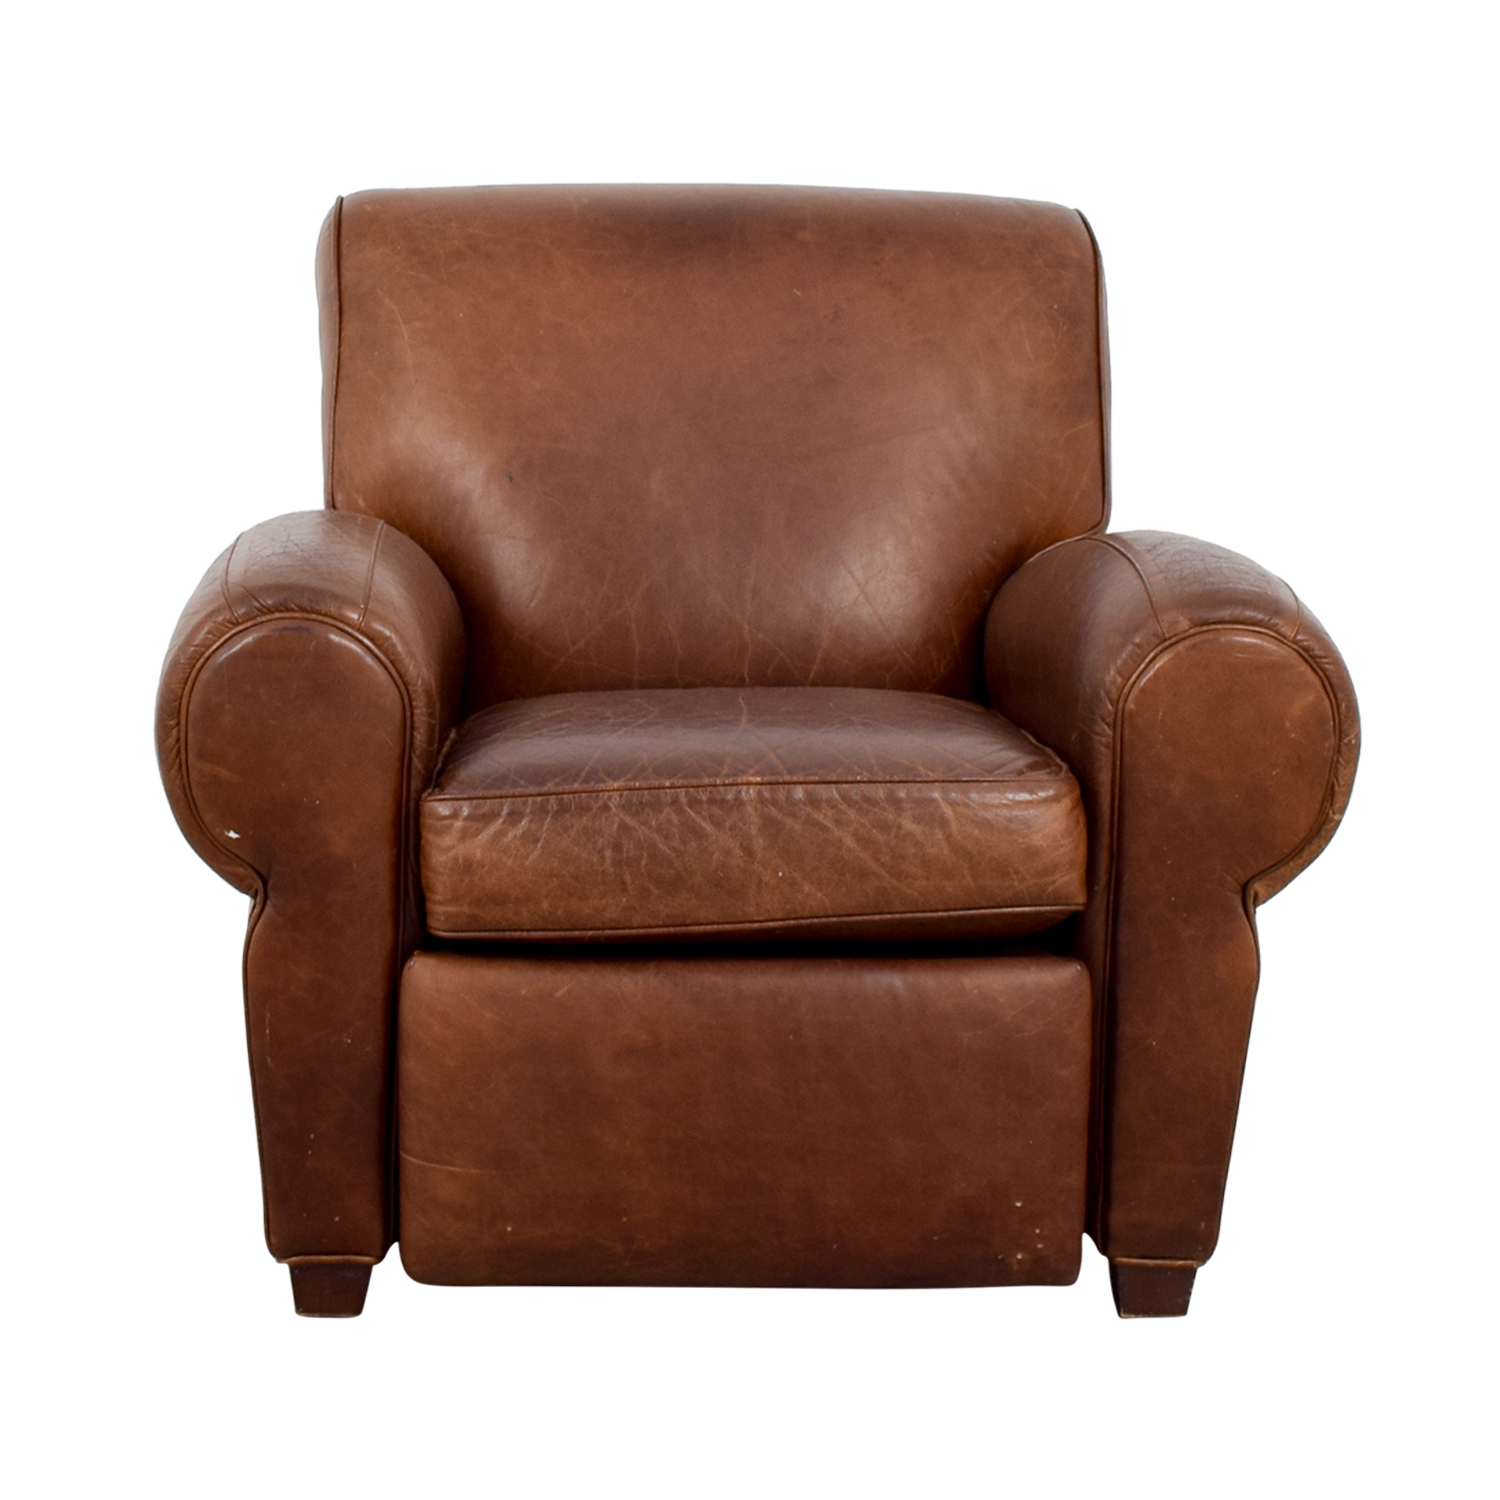 solid leather tx martel club products tan chair austin